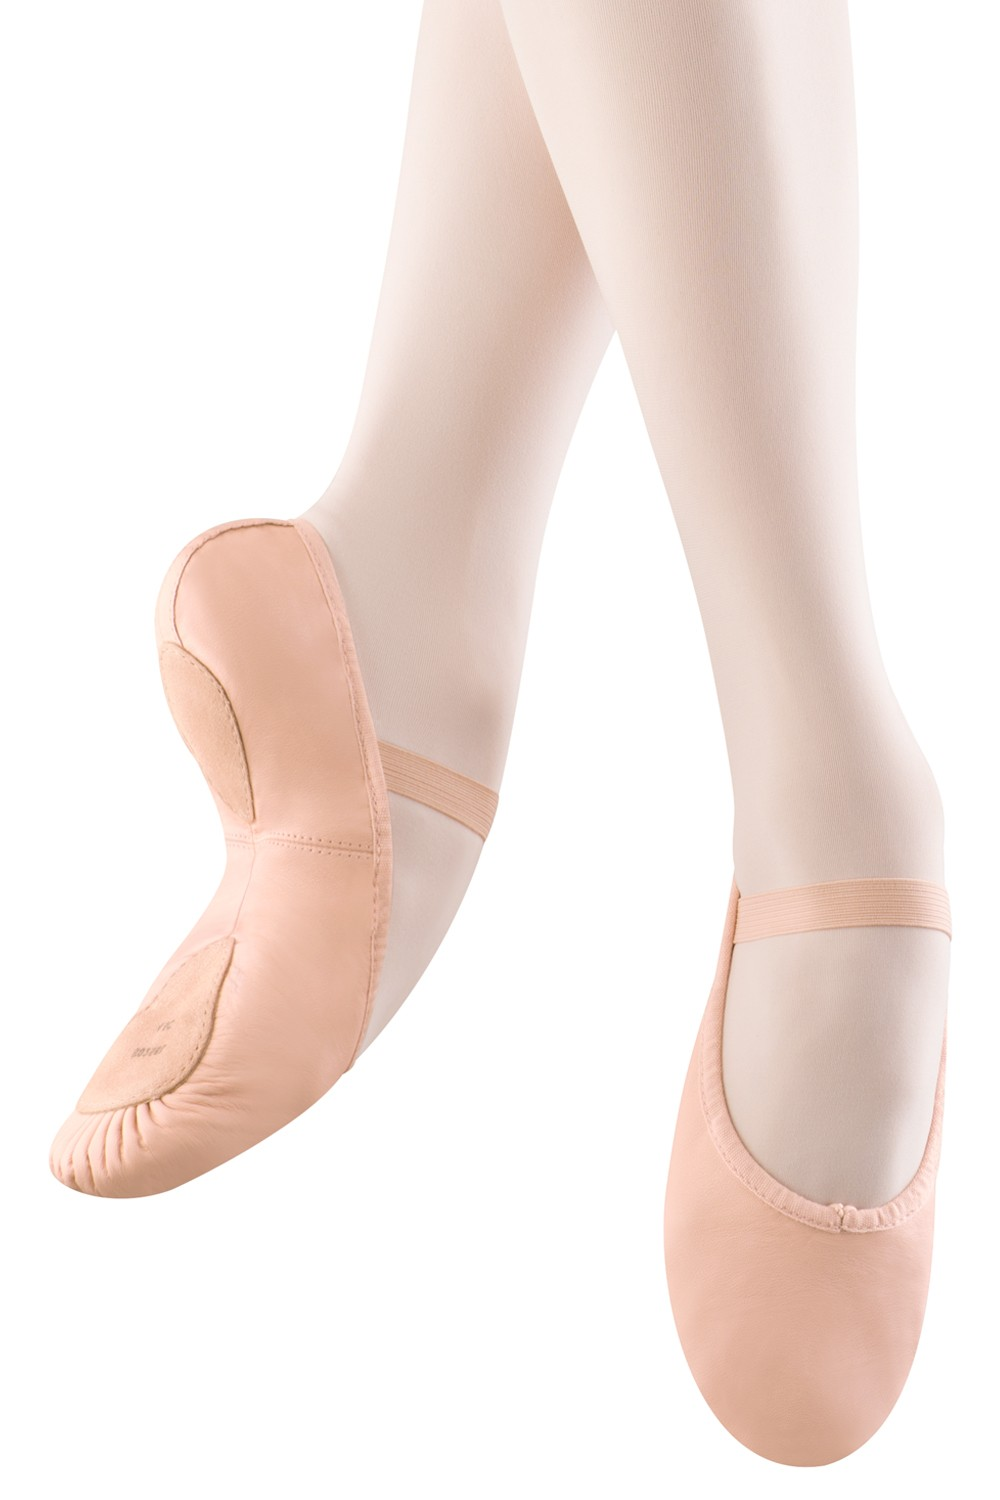 Dansoft Split Sole Women's Ballet Shoes